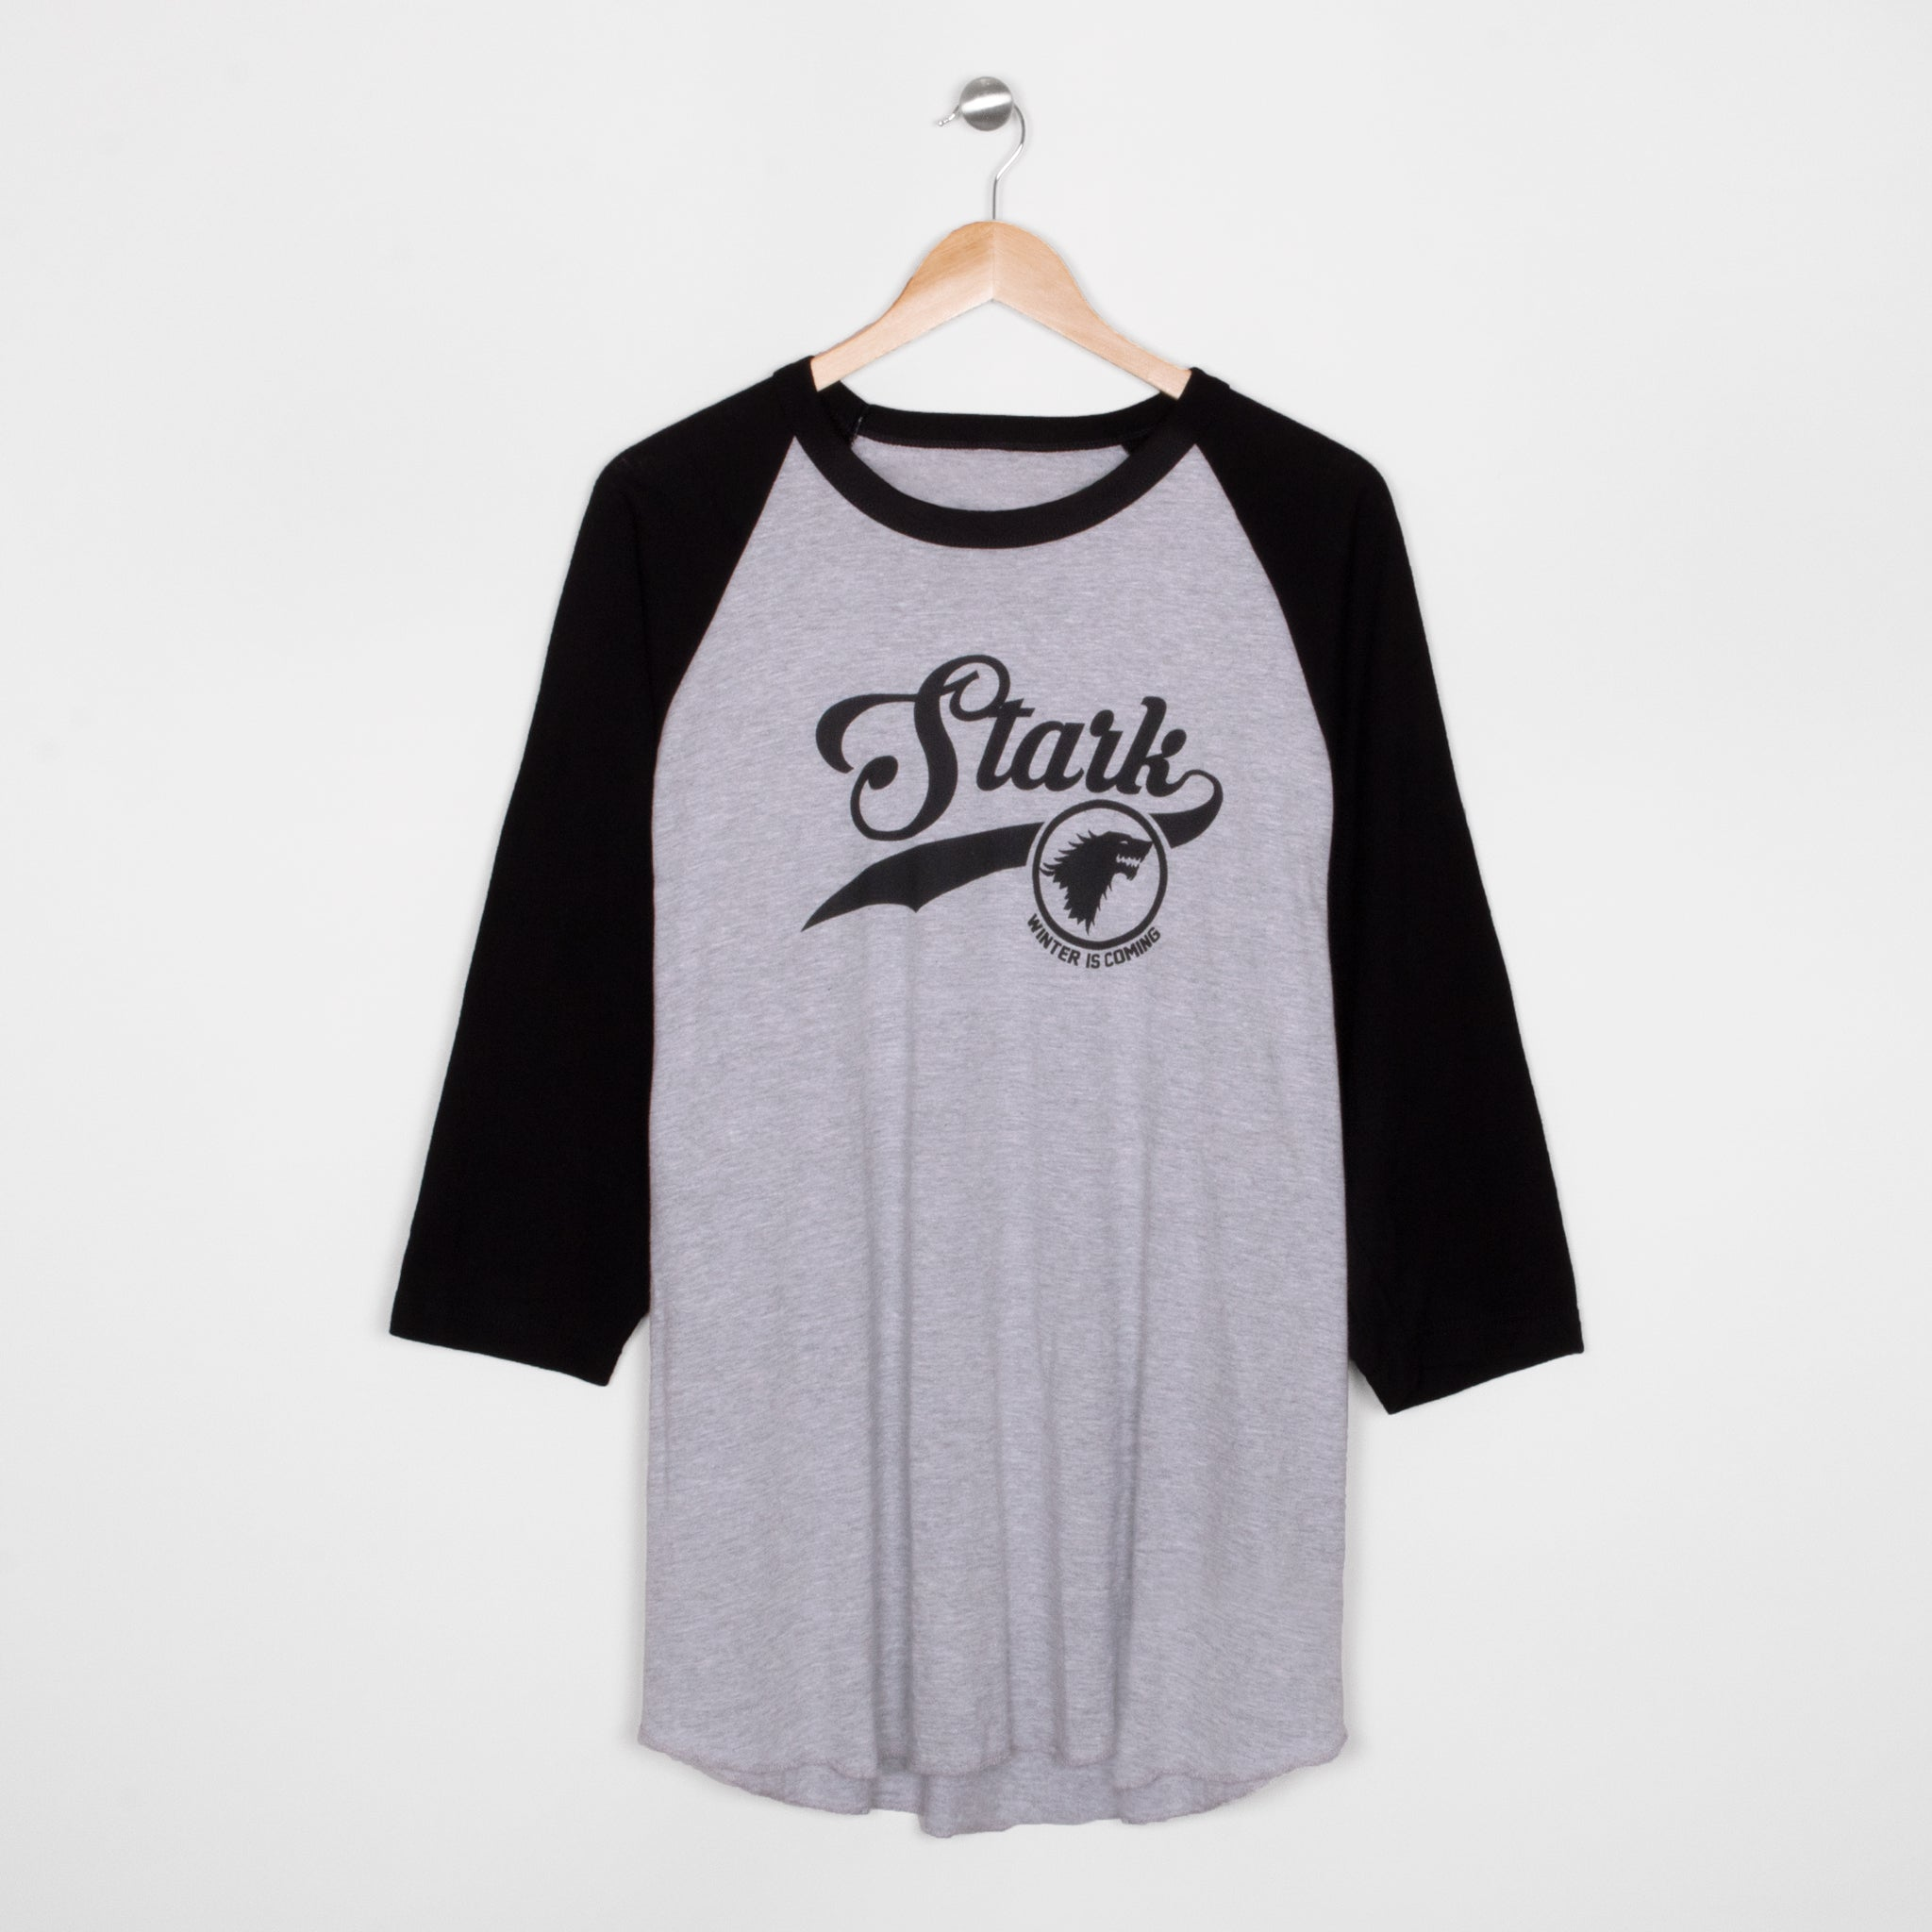 Game of Thrones - Stark Baseball Shirt